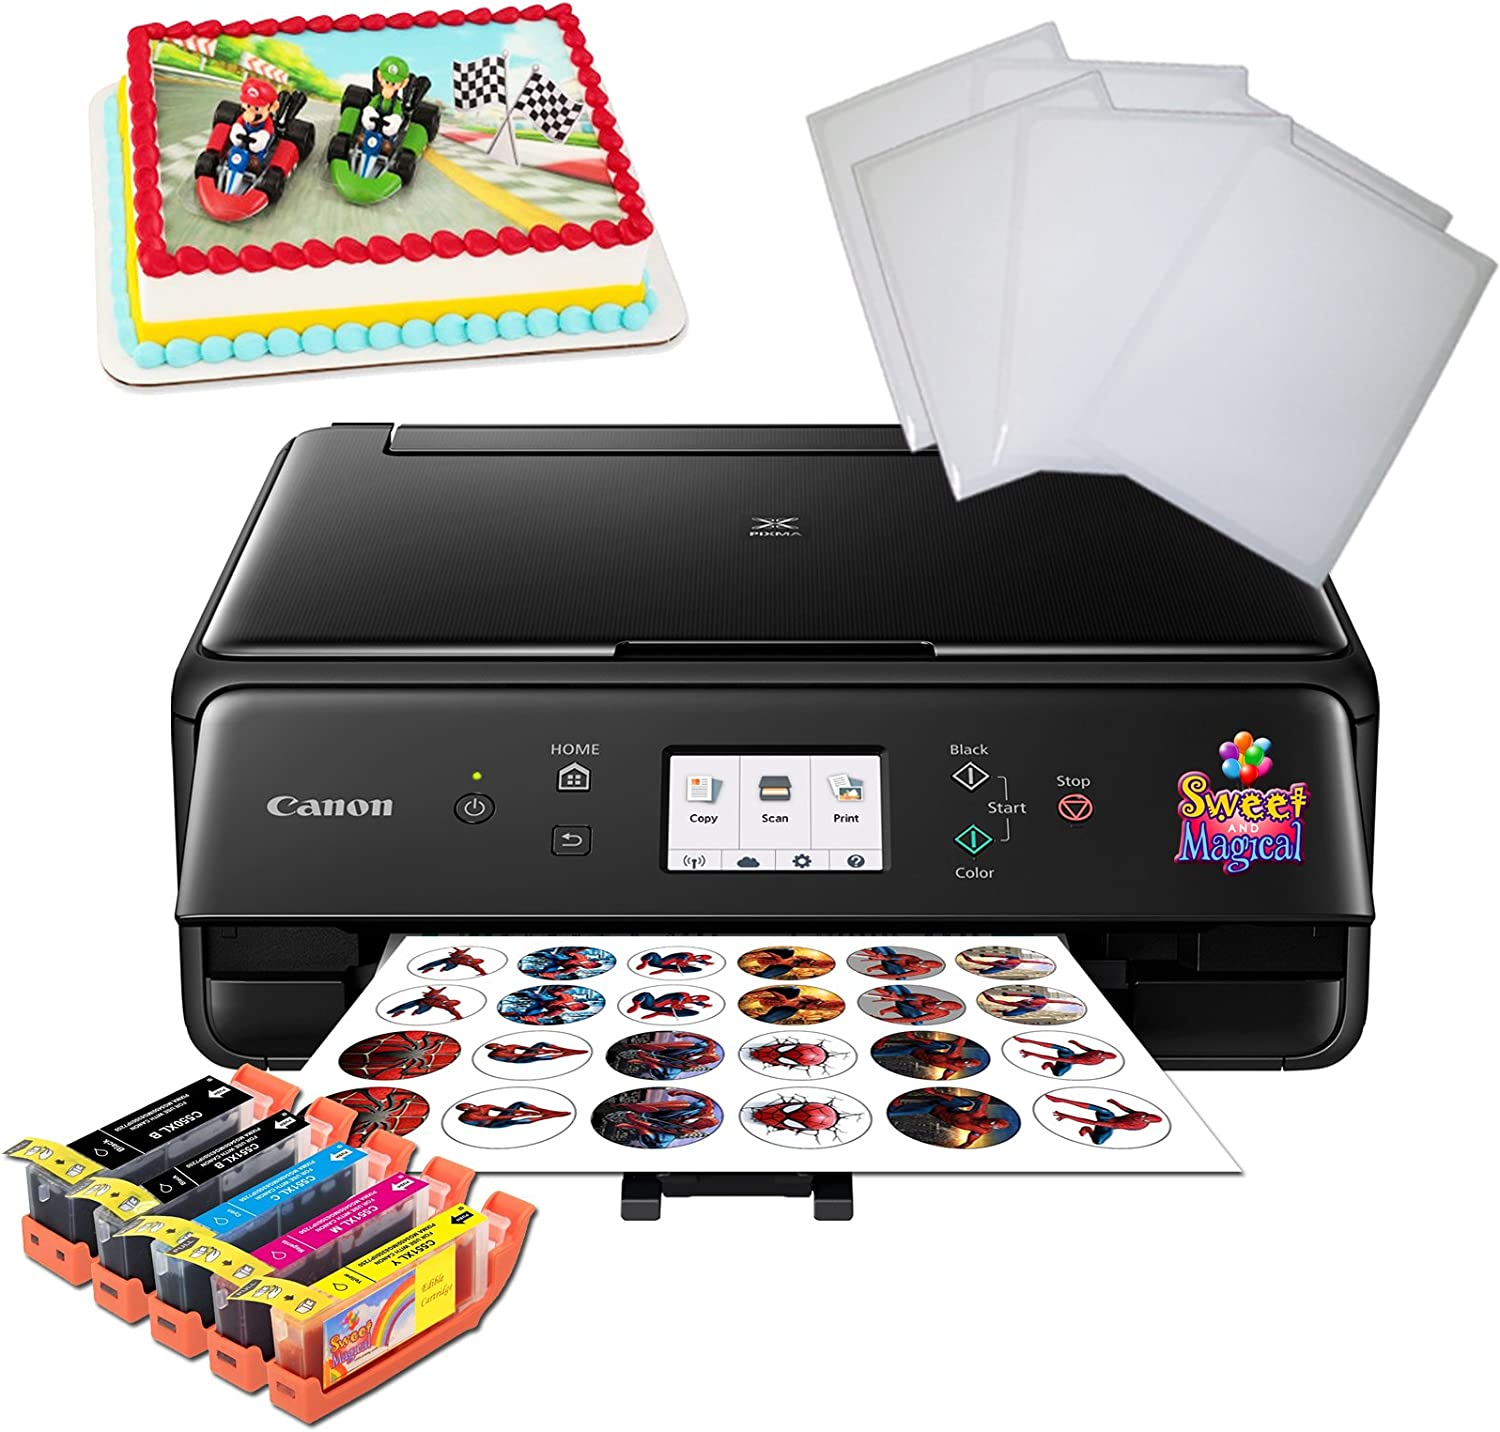 Cake Printer Bundle,Comes with Ink and Frosting Sheets